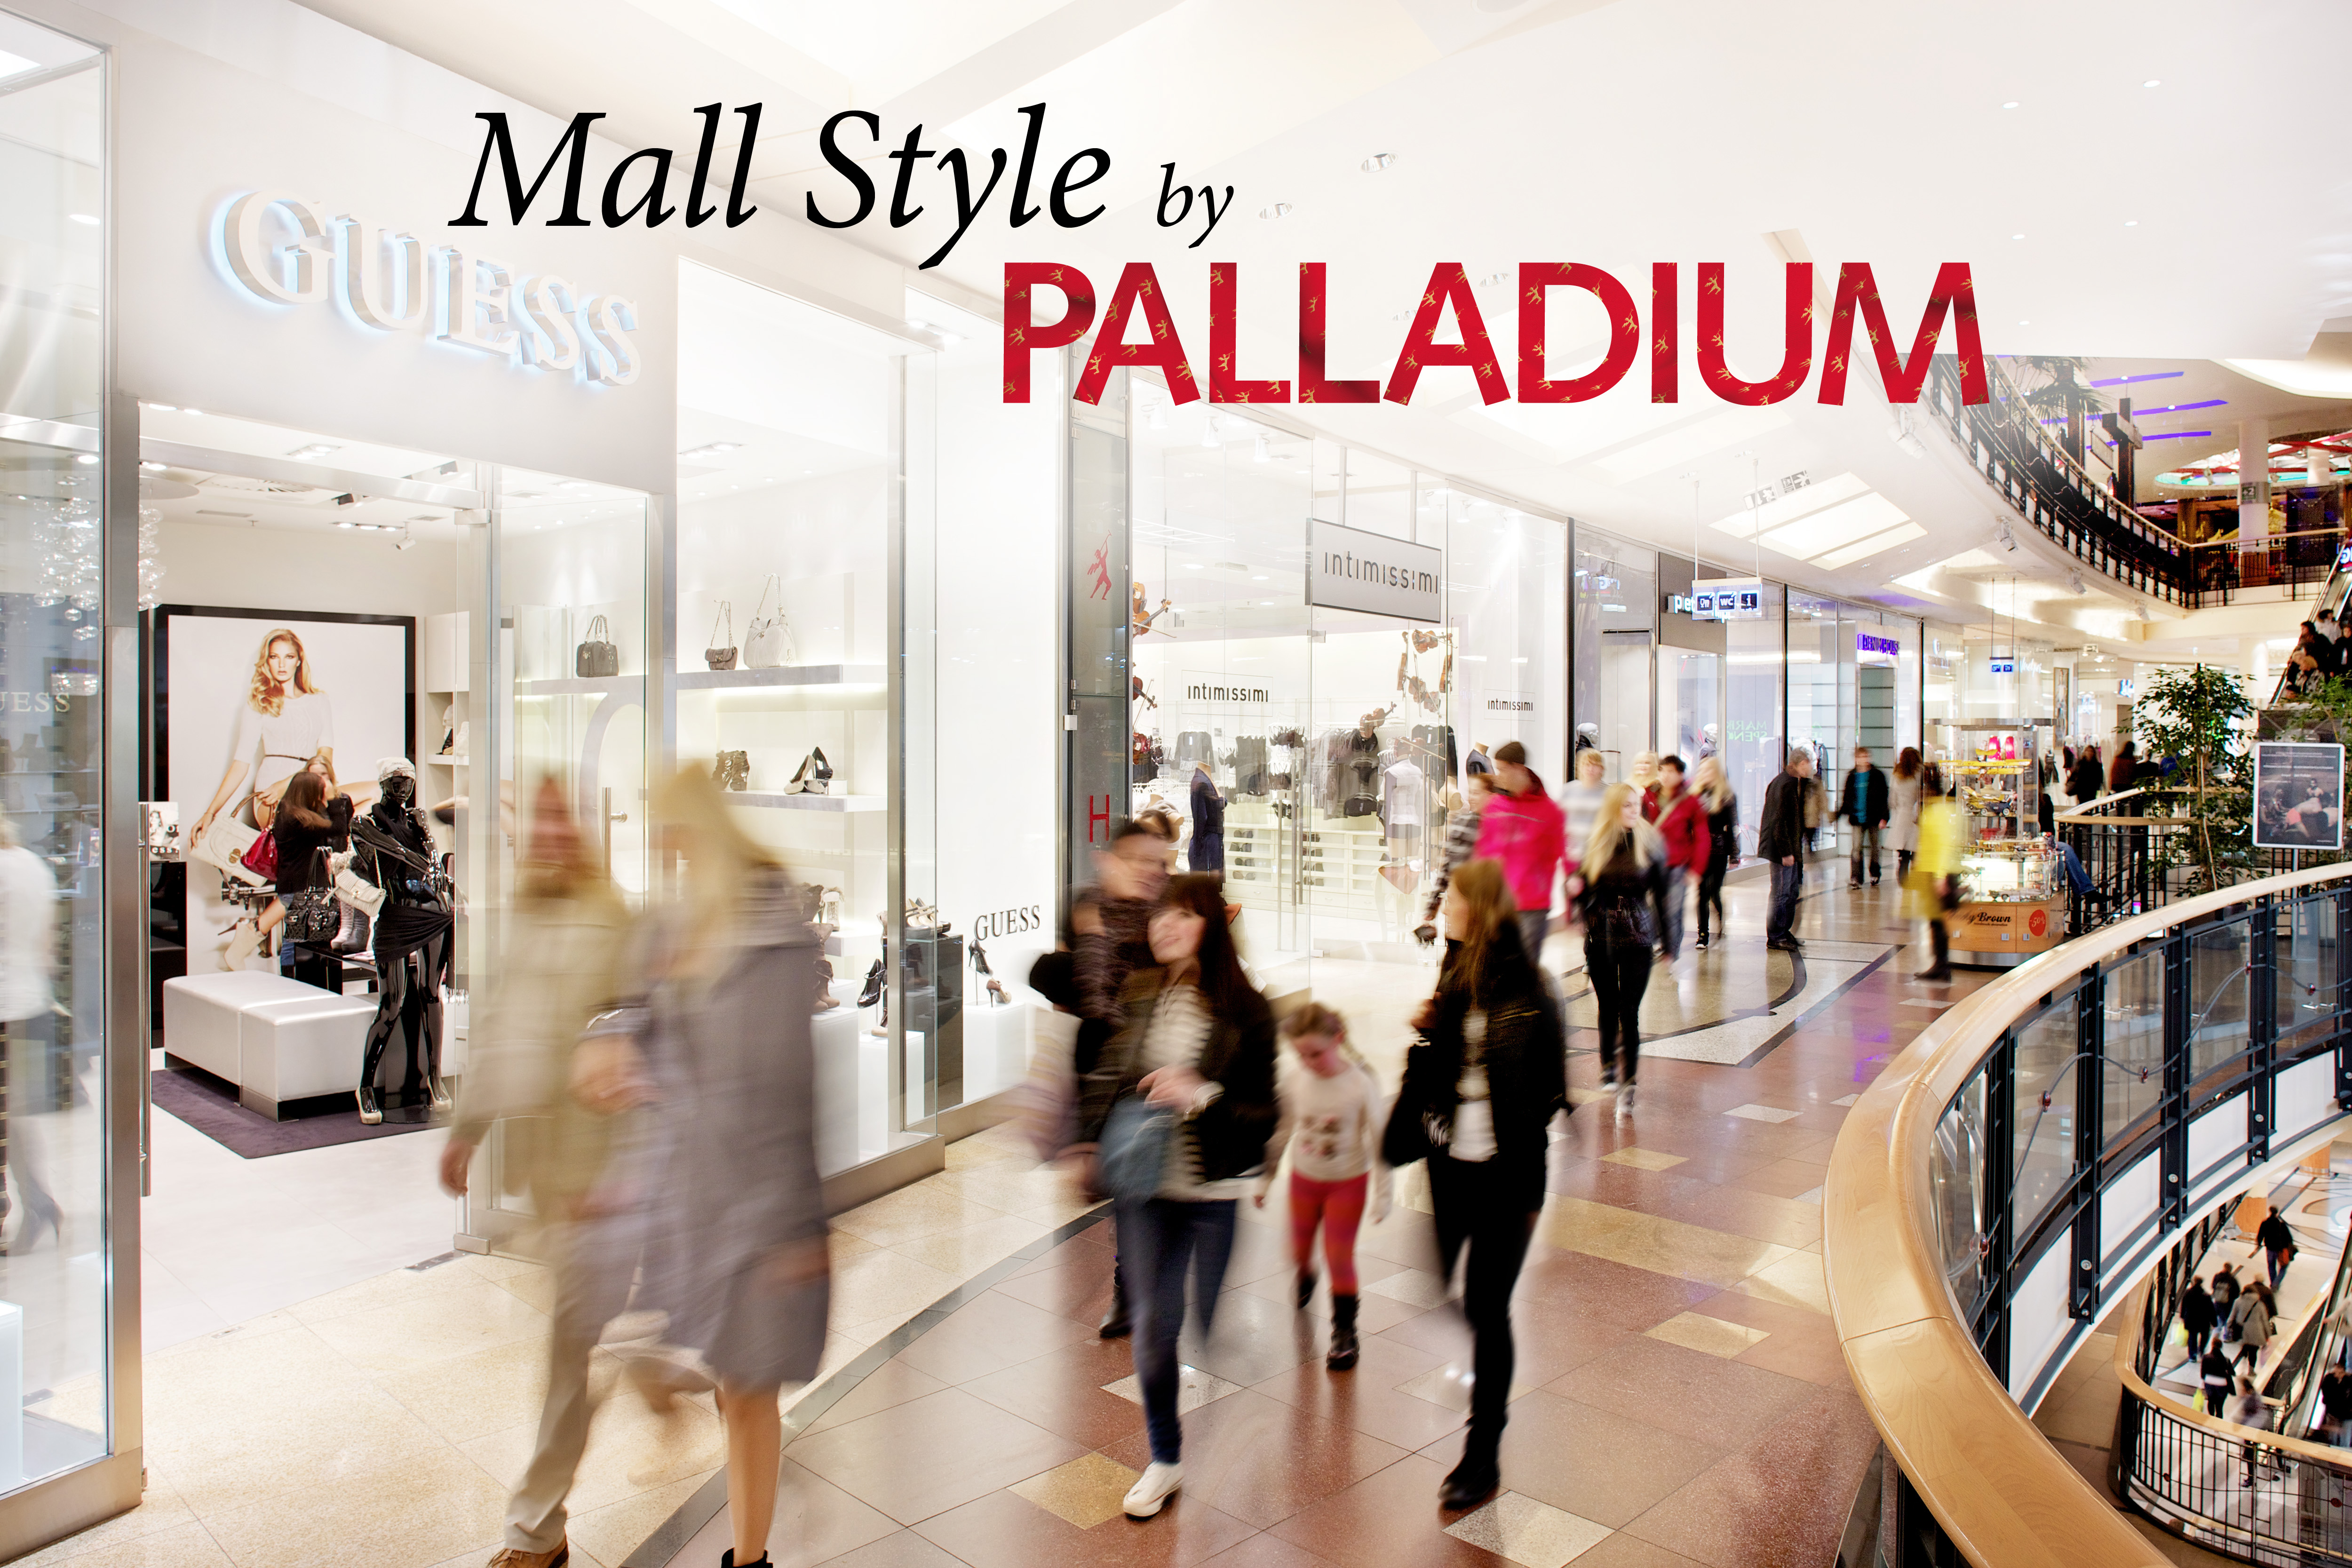 MALL STYLE 7